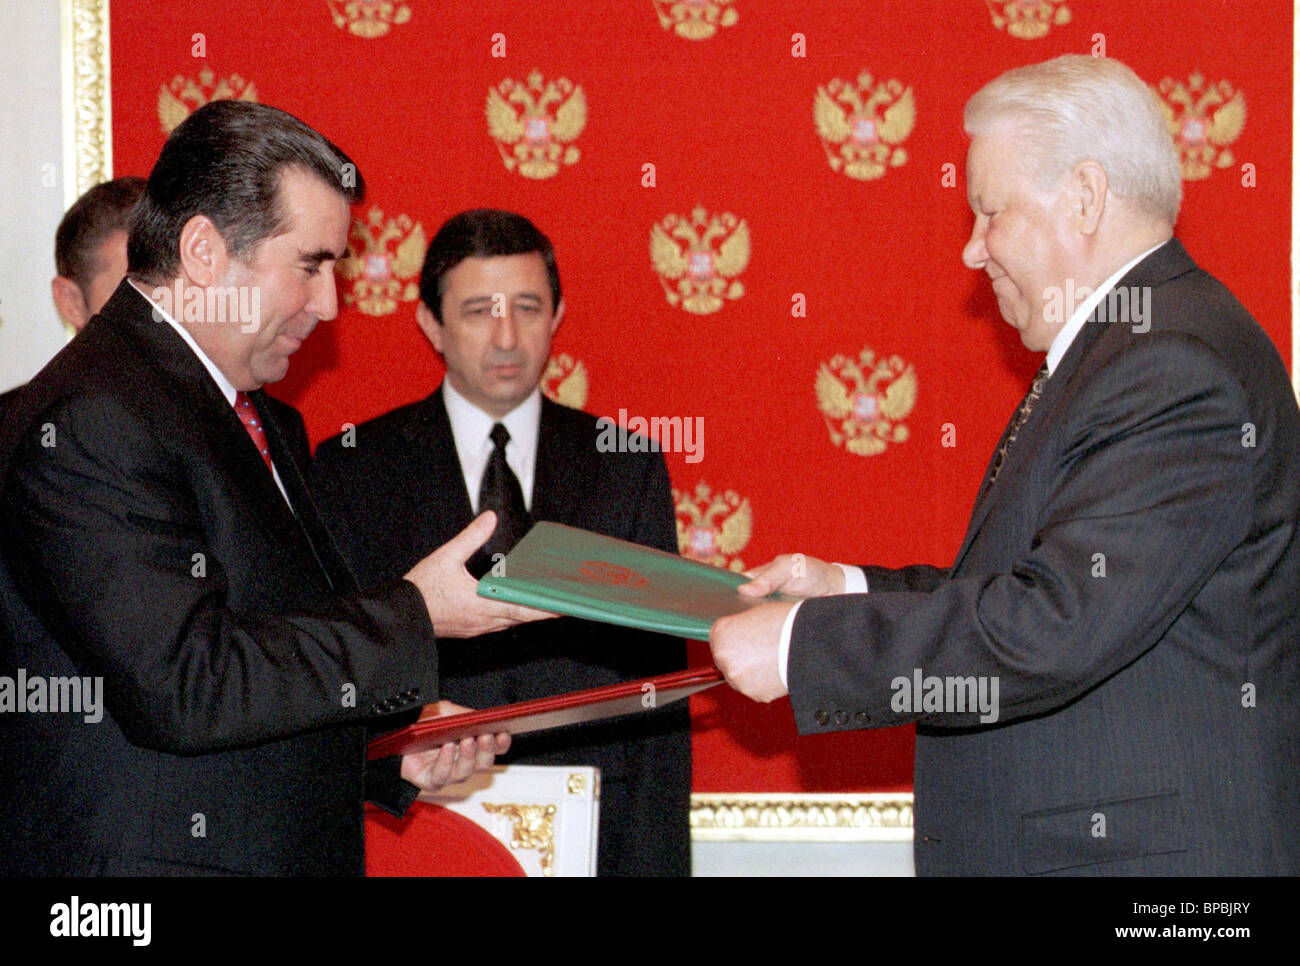 exchanging documents - Stock Image